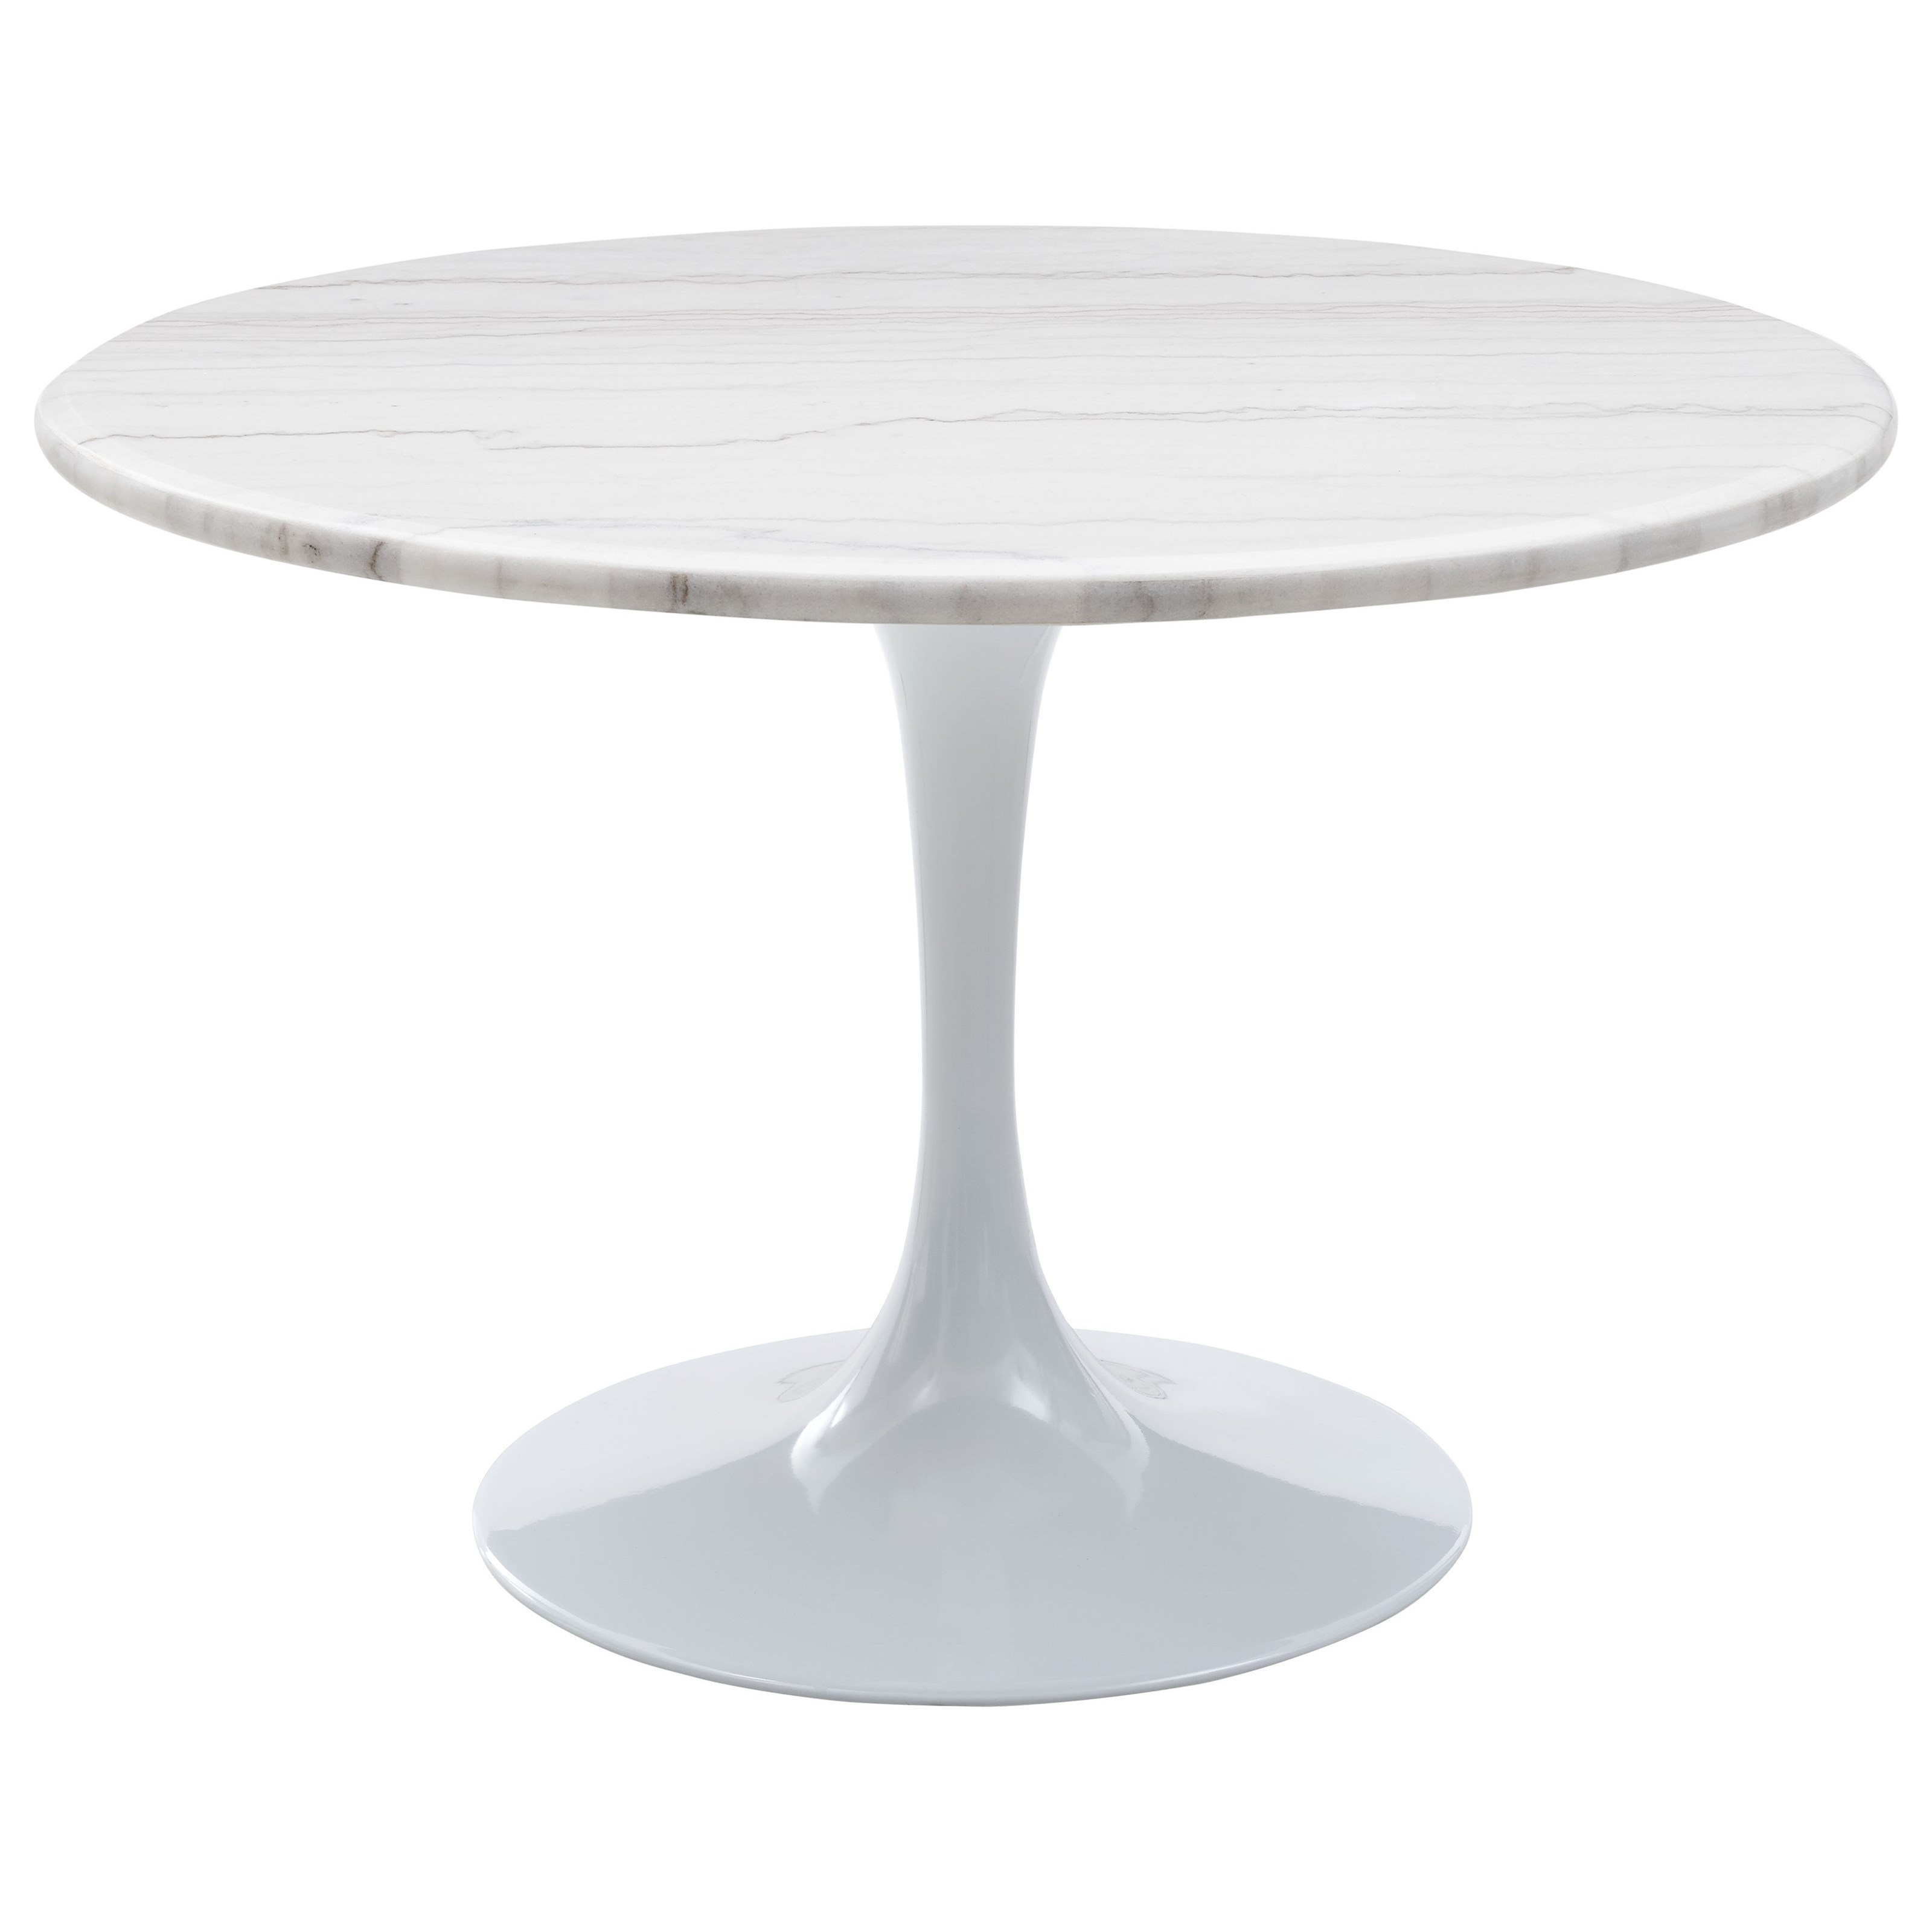 Colfax Table - White Top & White Base by Steve Silver at Walker's Furniture